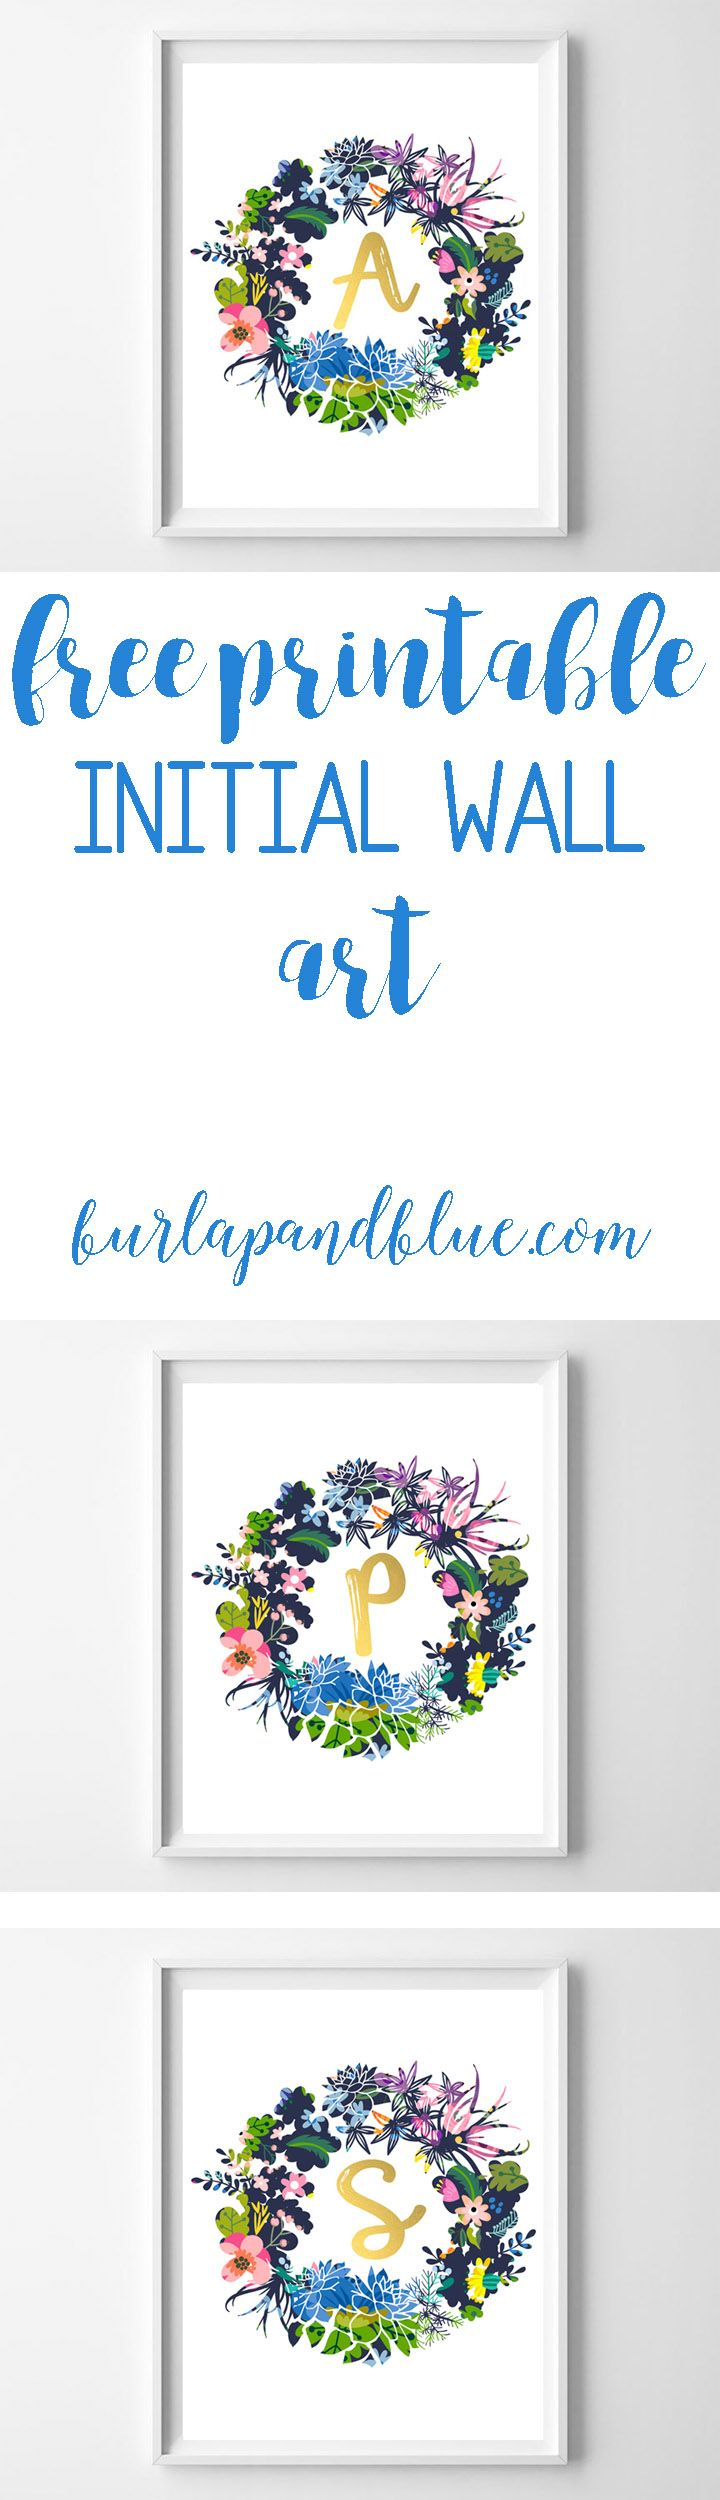 free printable initial wreath wall art! perfect for nursery art, wall art or…